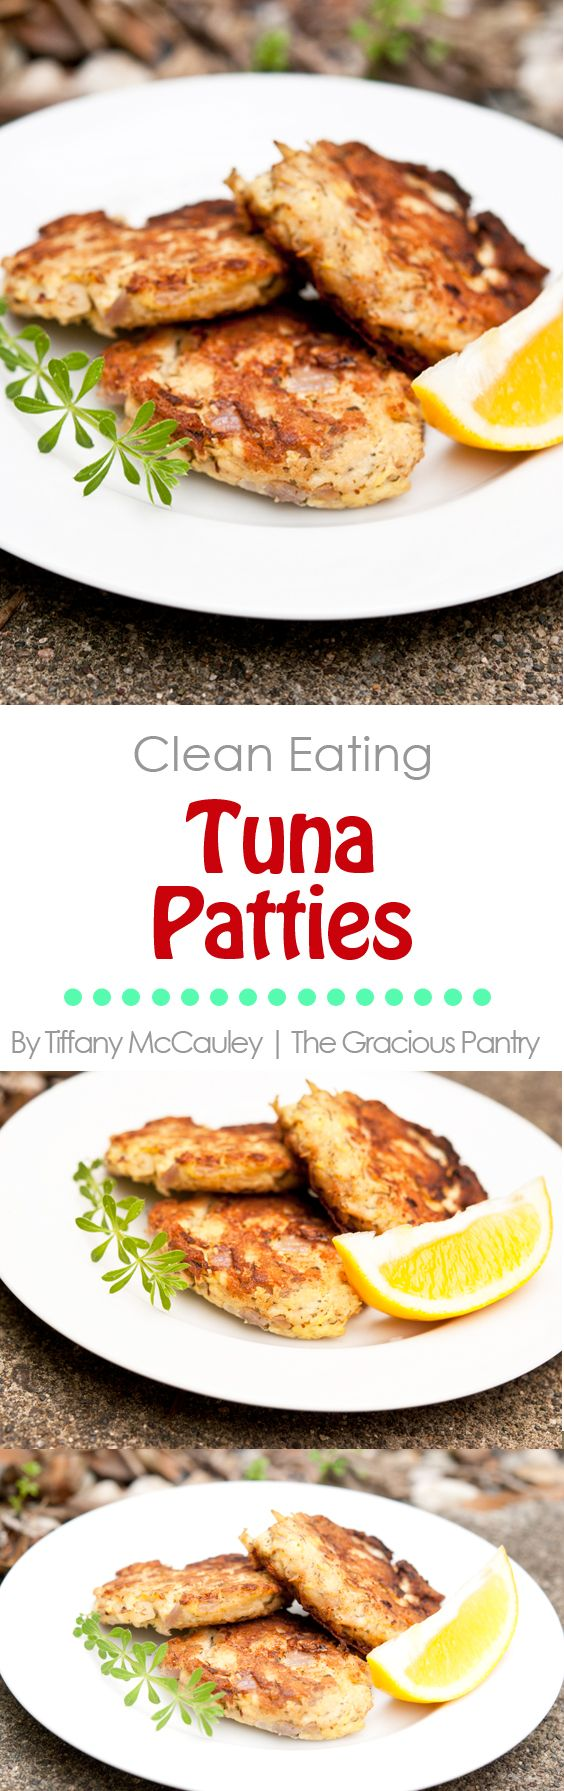 134 best clean eating low carb recipes images on pinterest for Cleanest fish to eat